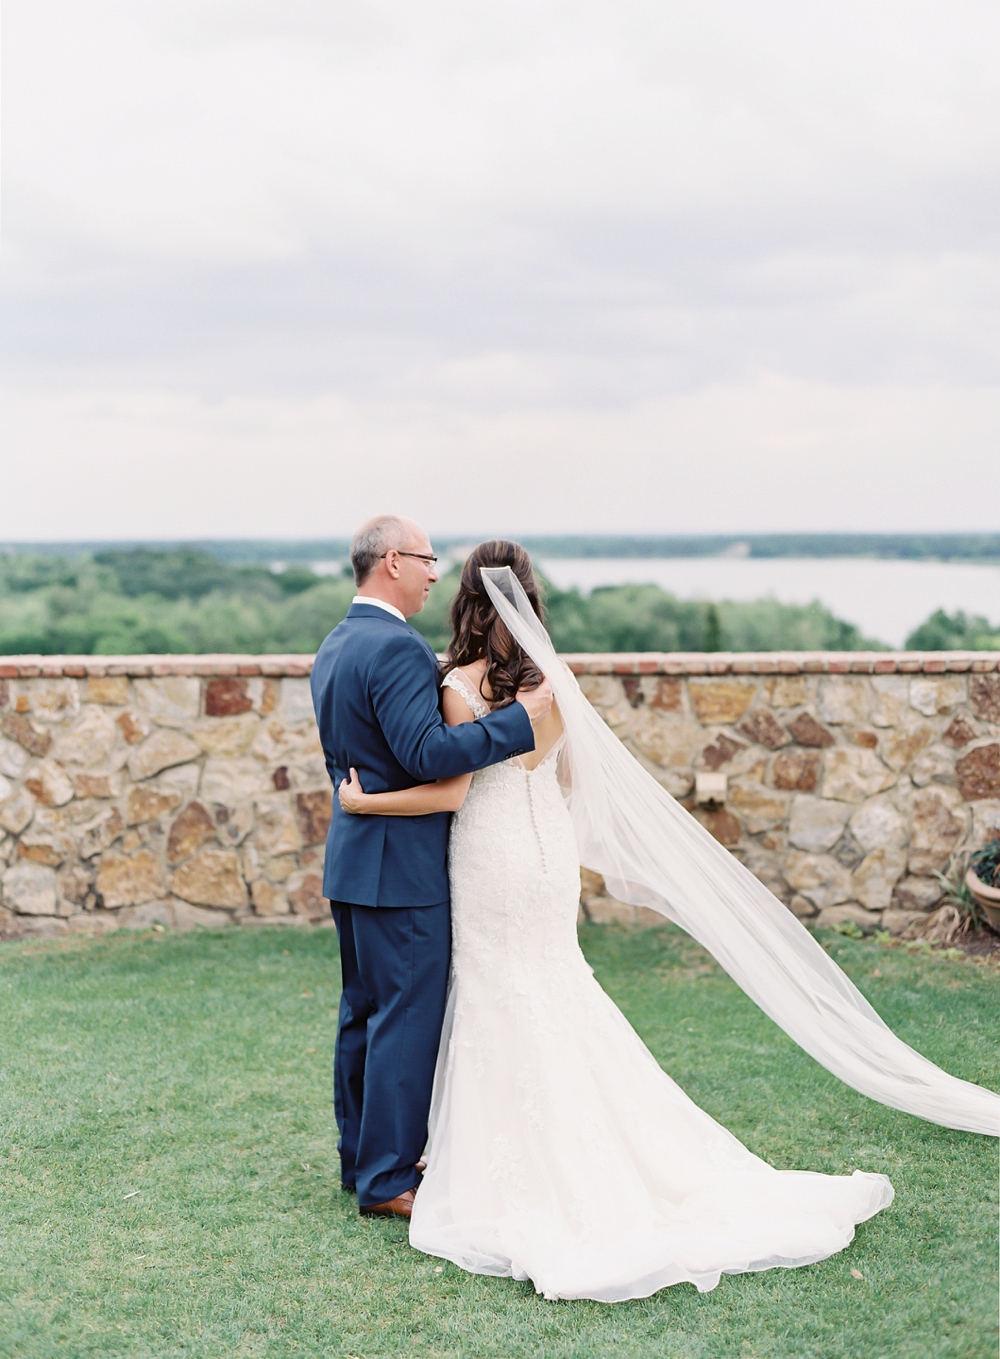 Vicki Grafton Photography - Fine Art Film Wedding Photographer - Bella Collina Wedding_0062.jpg